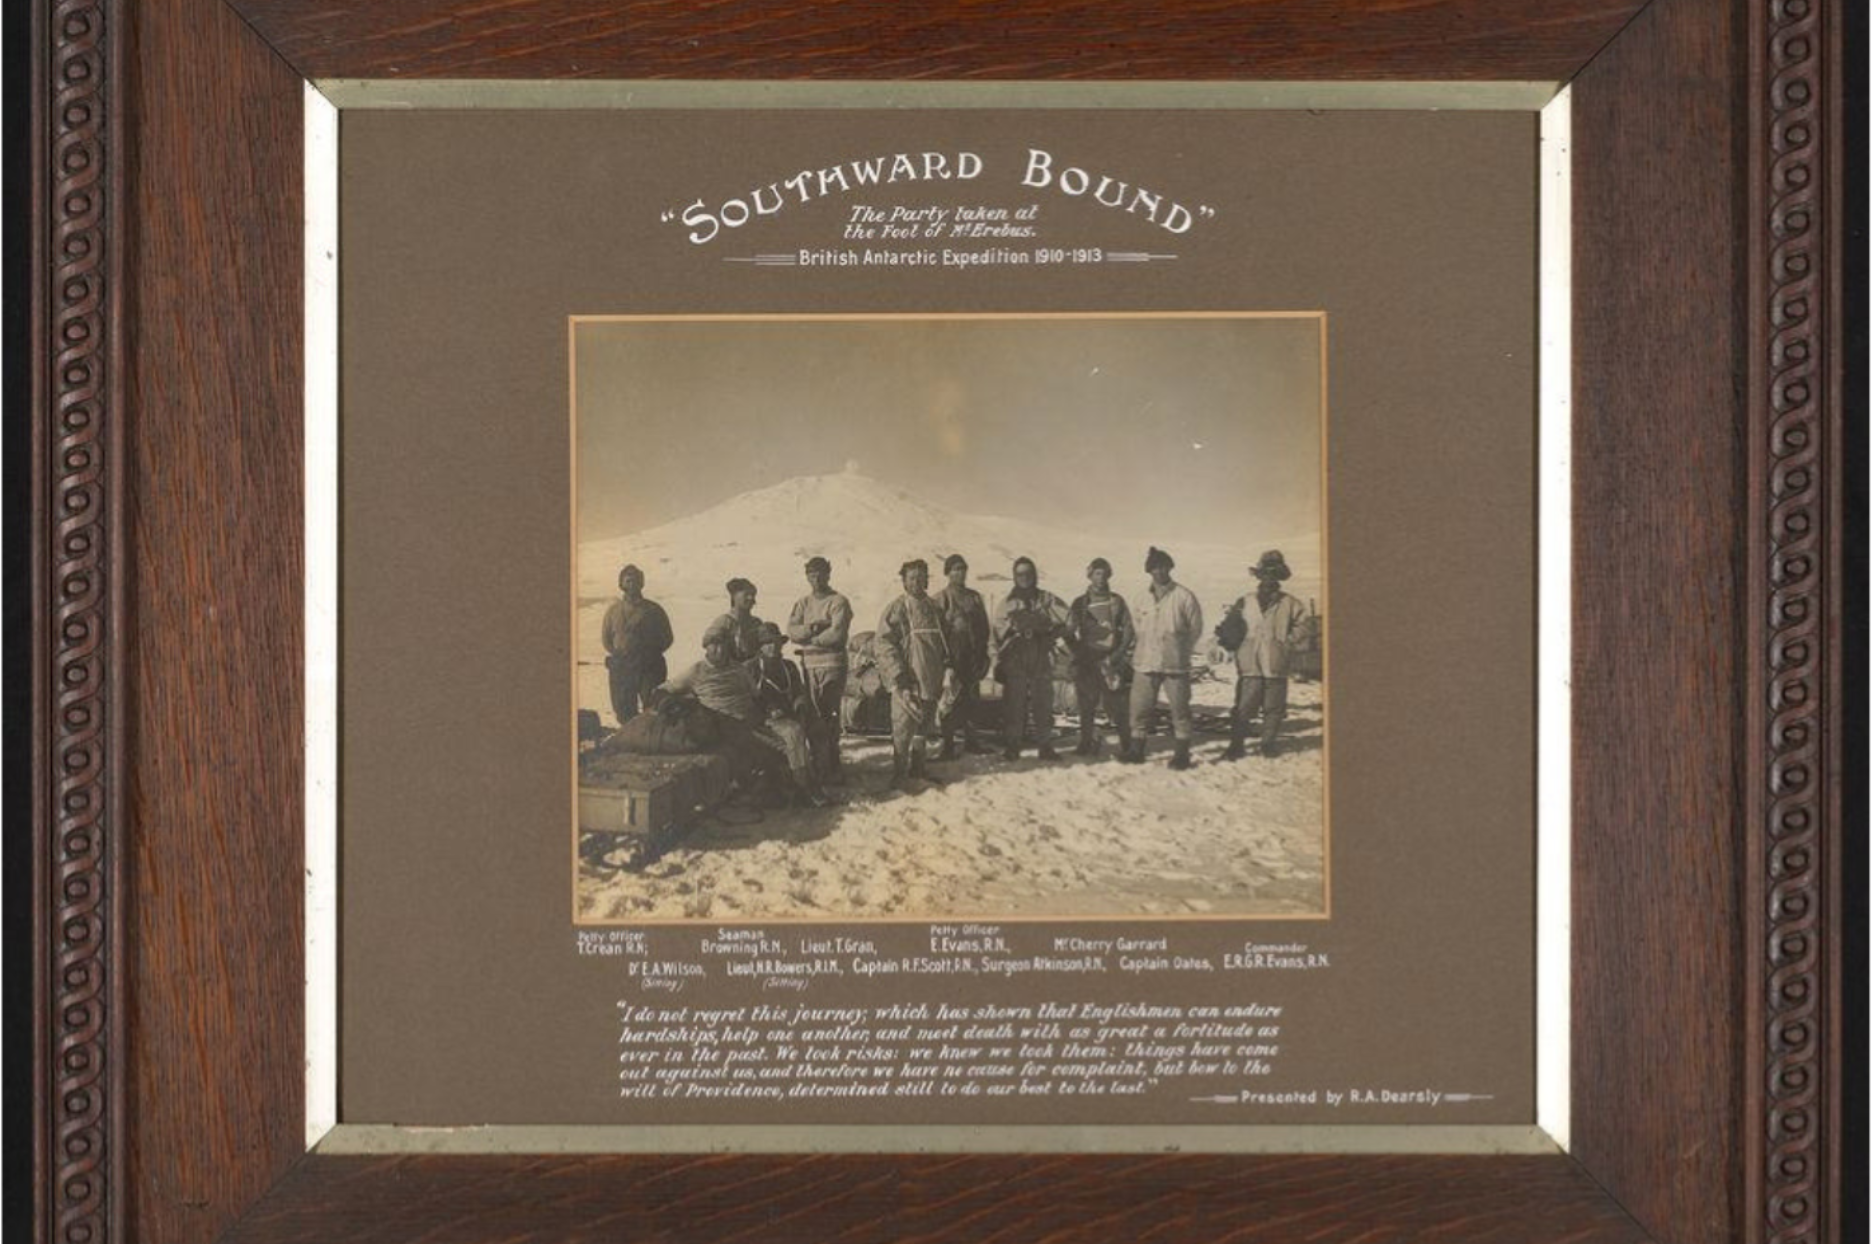 14474 1 The Party at the foot of Mt Erebus during the British Antarctic Expedition 1910-1913